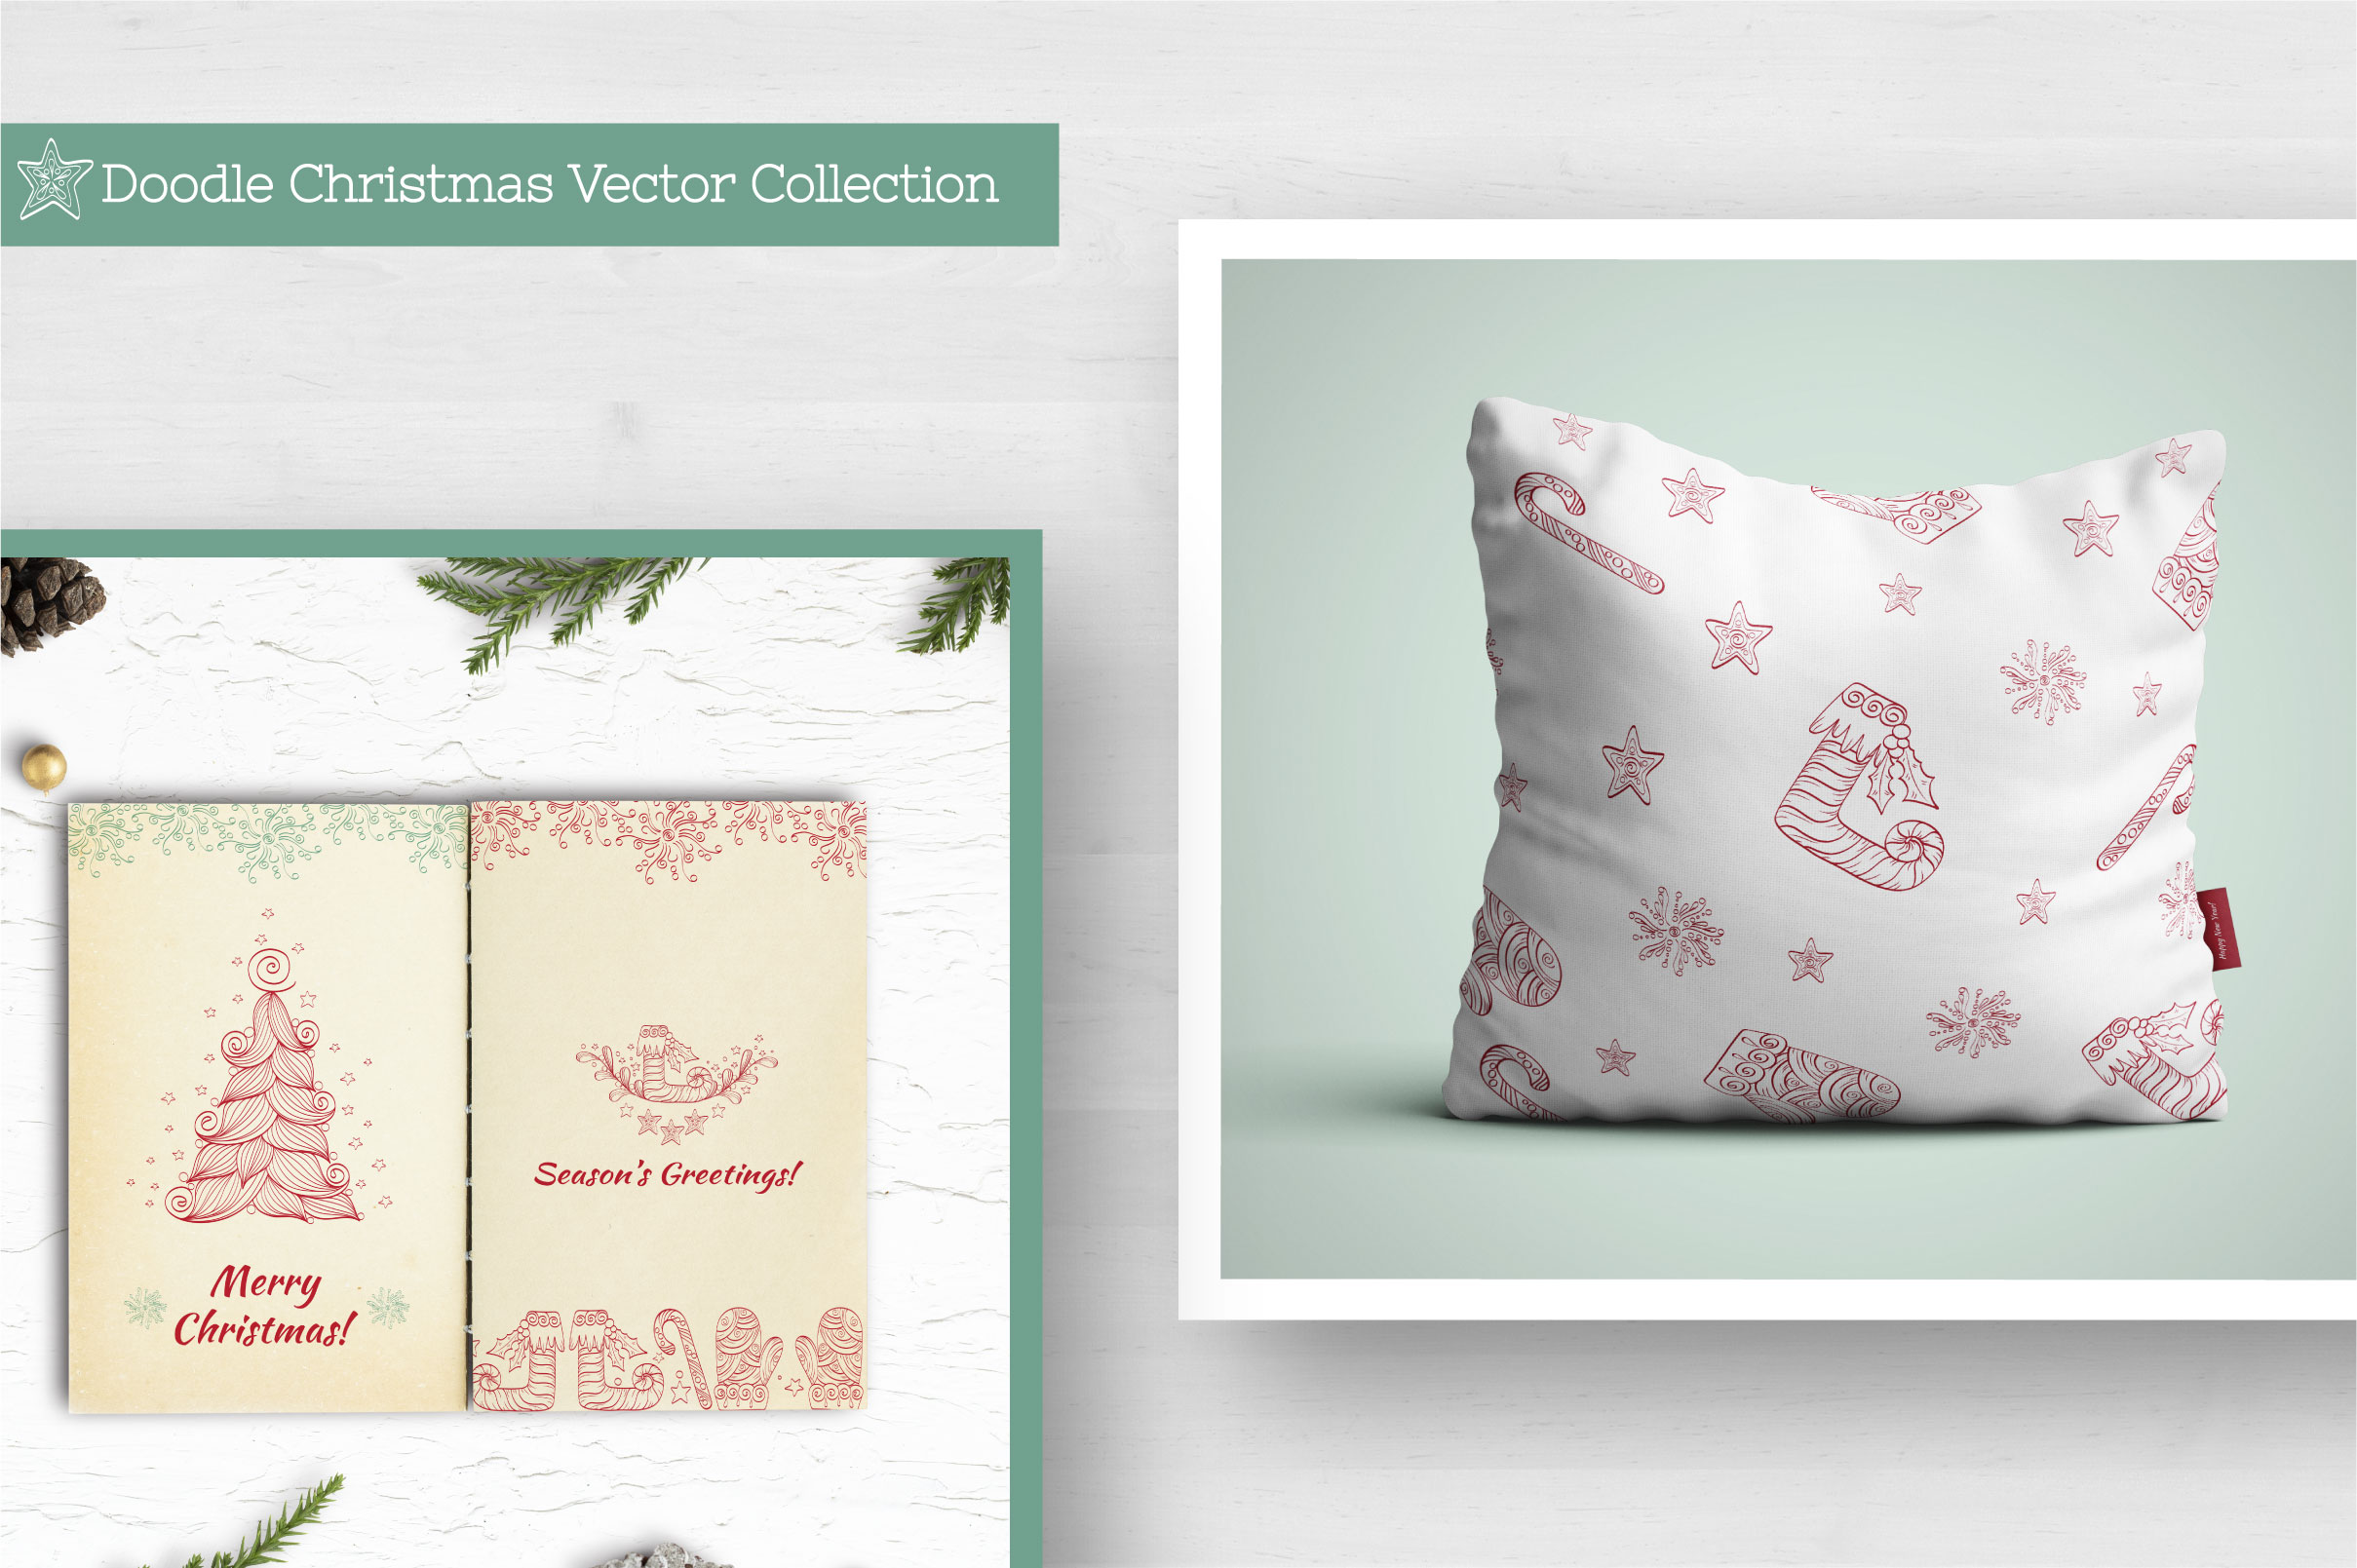 Doodle Christmas Vector Collection example image 9